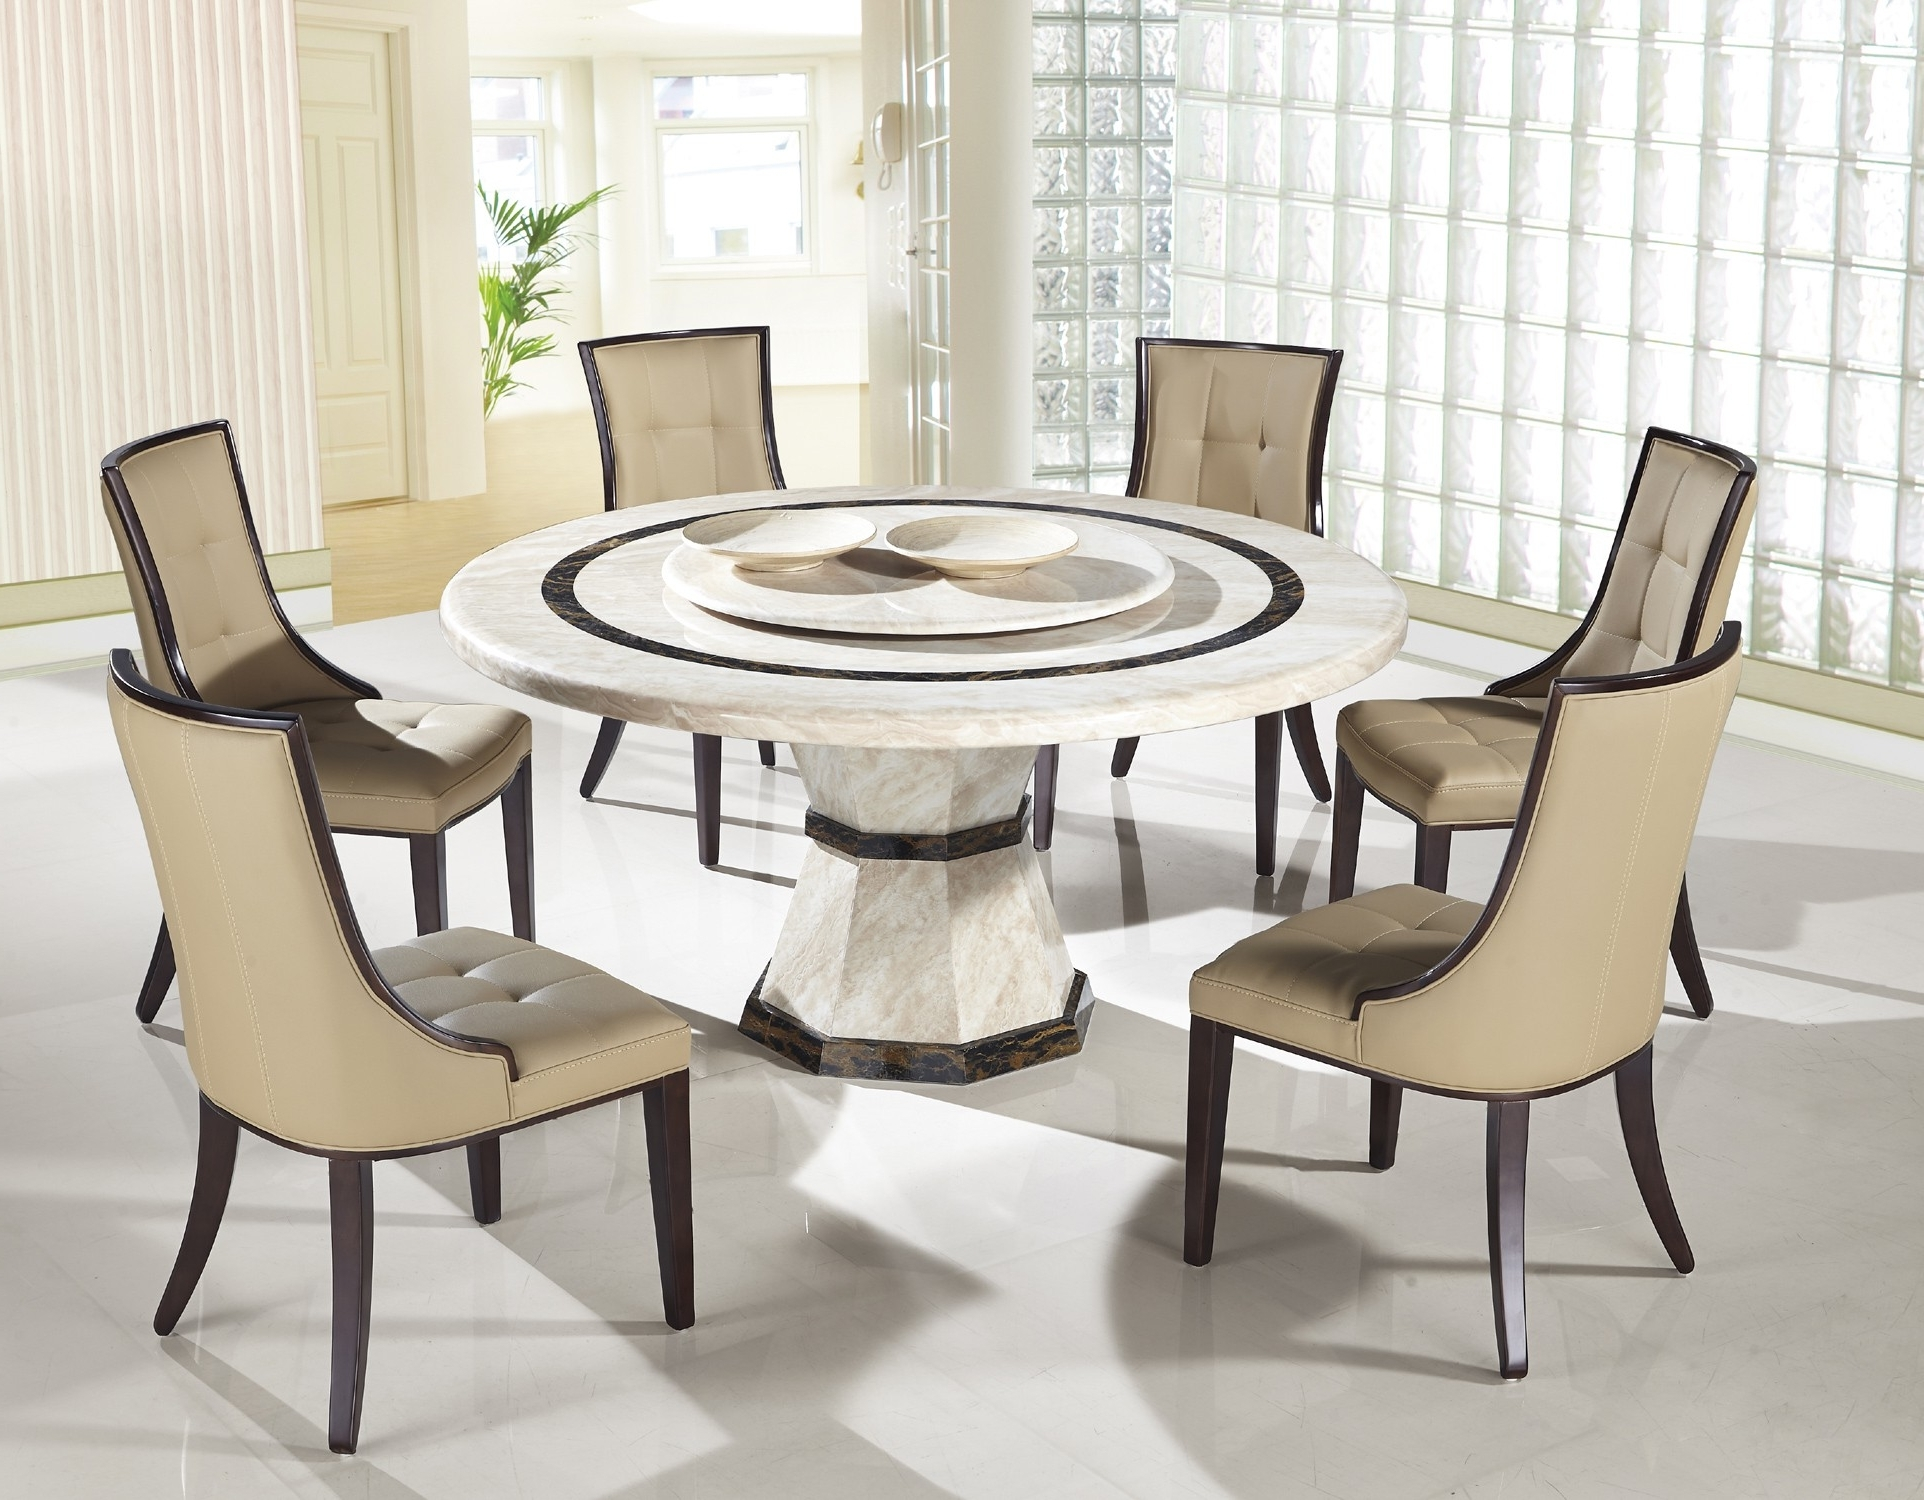 Take Advantage Of Modern Glass Dining Table – Home Decor Ideas Intended For Fashionable Modern Dining Sets (View 19 of 25)